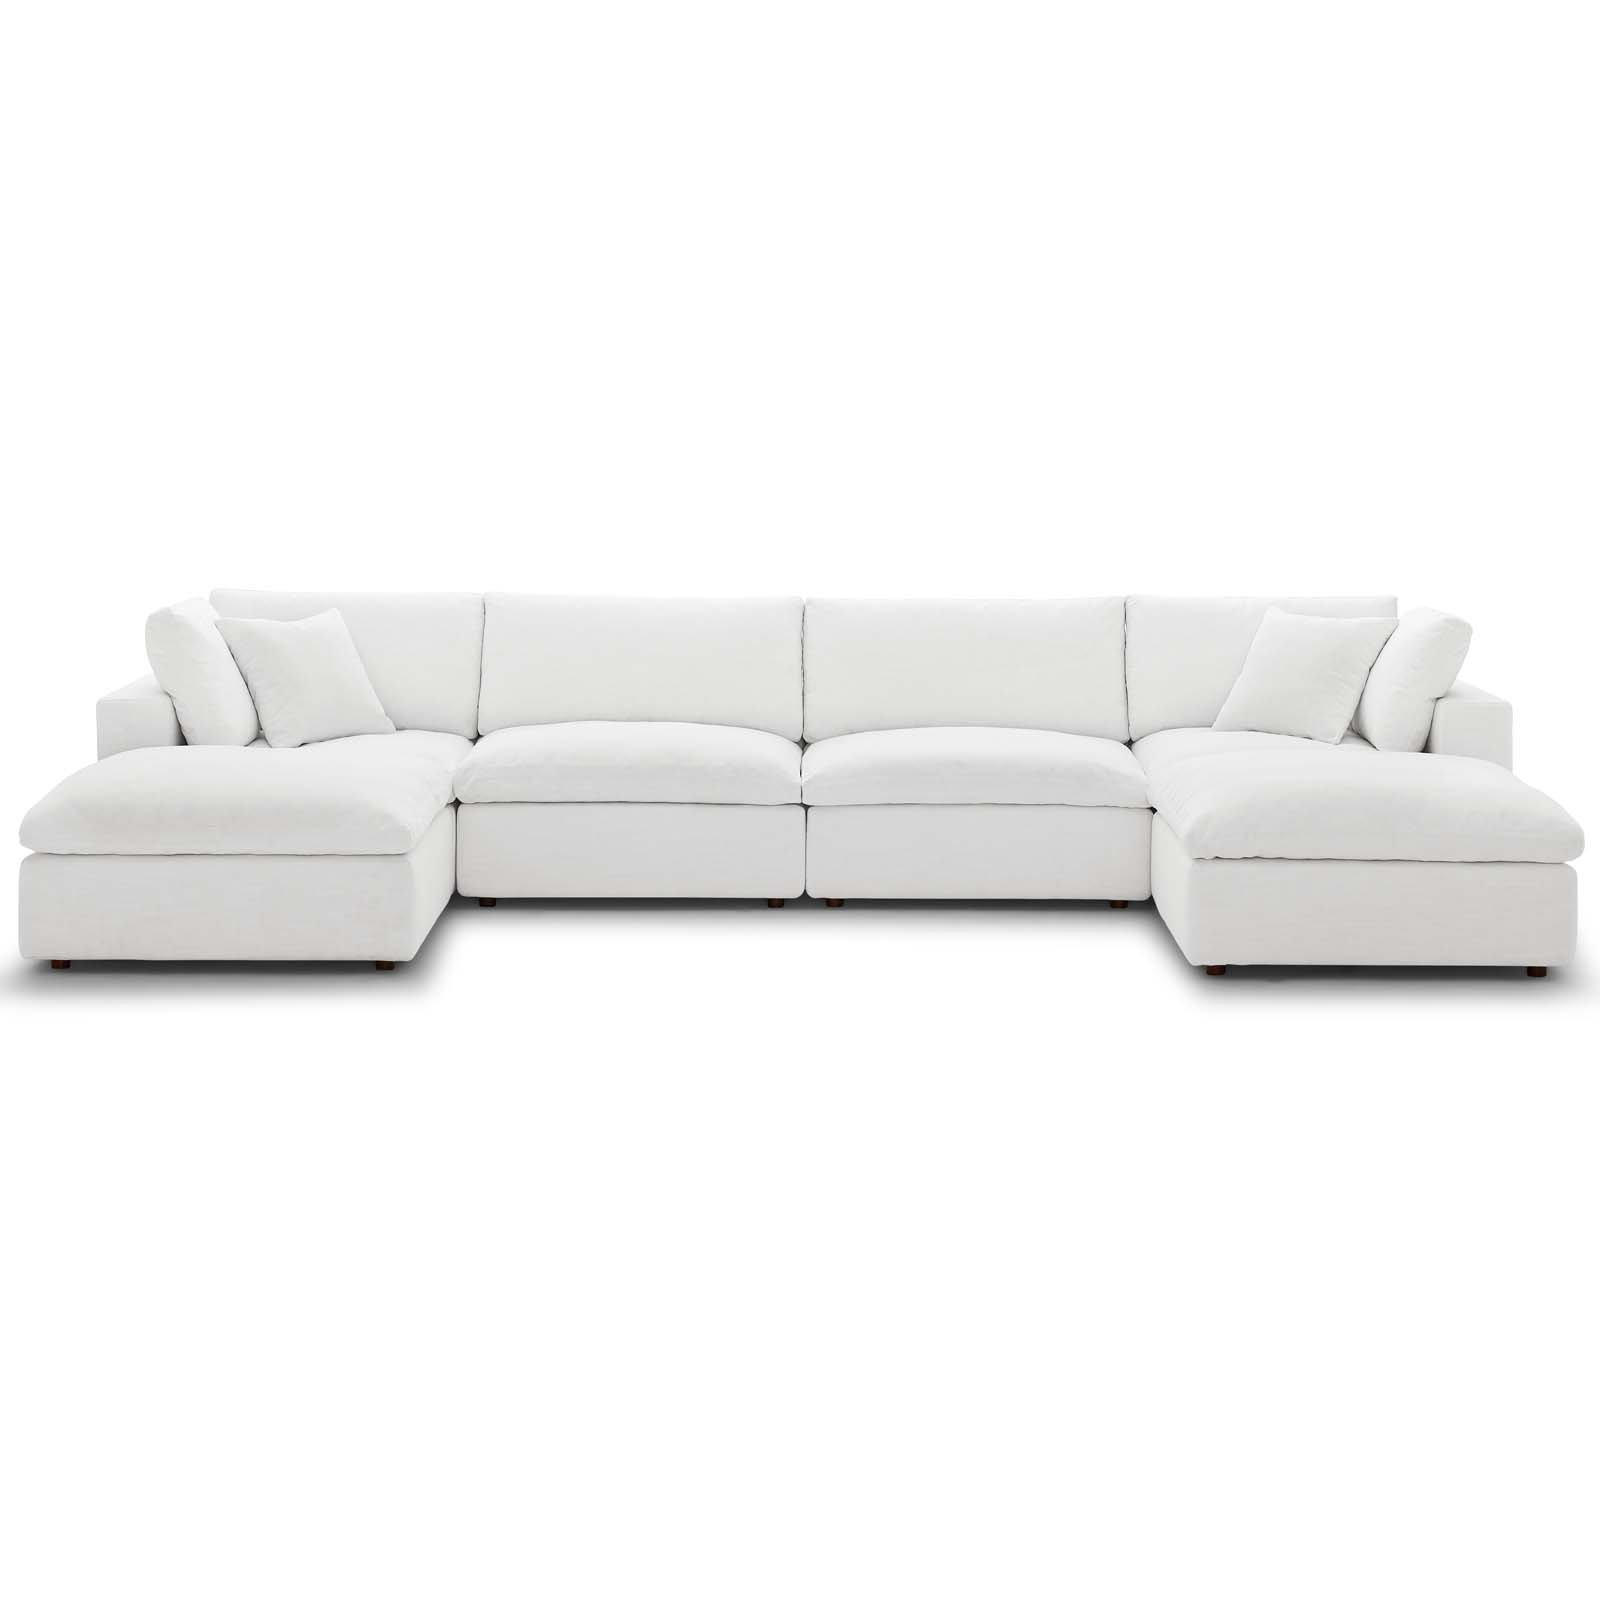 Commix Down Filled Overstuffed 6 Piece Sectional Sofa Set With Regard To Down Filled Sofas (View 5 of 15)